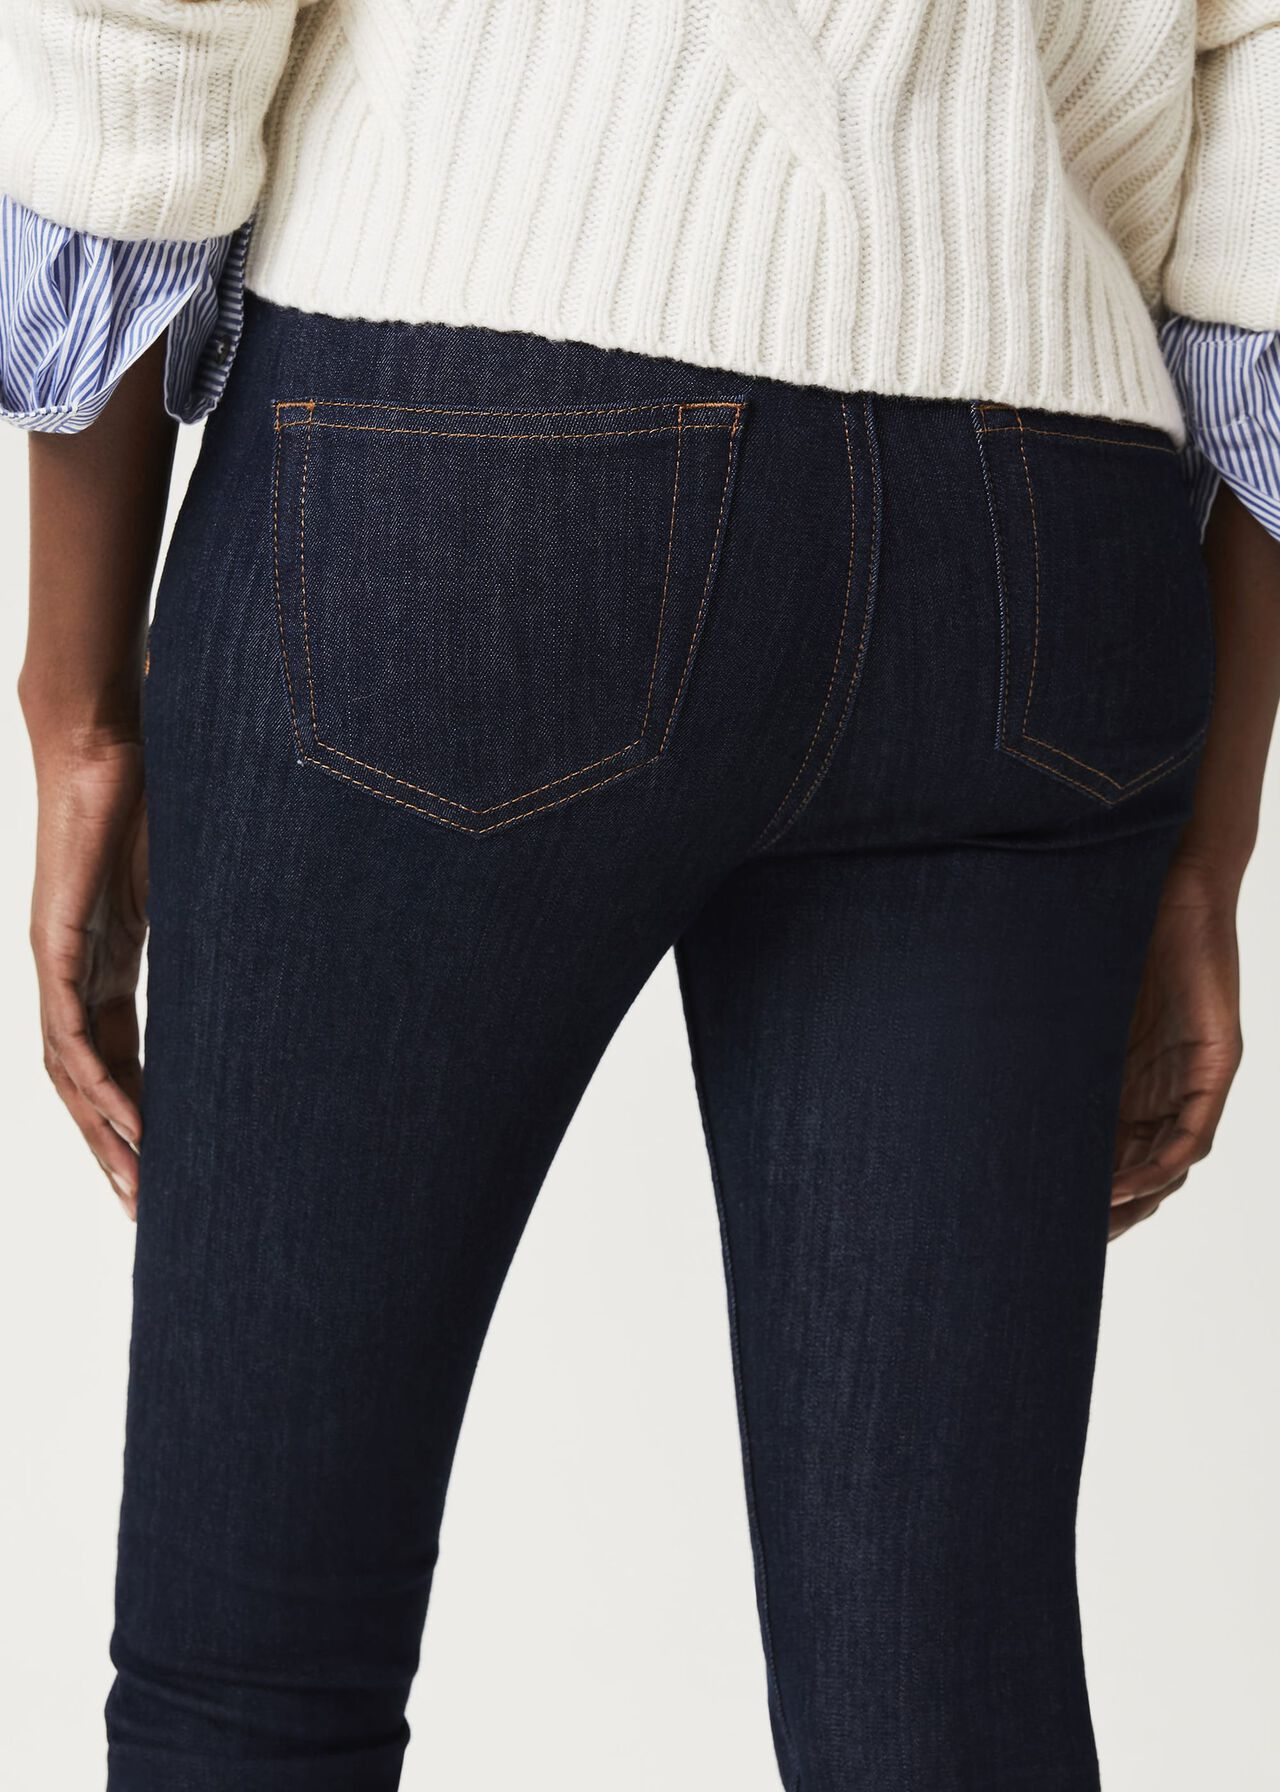 Gia Sculpting Jean With Stretch, Indigo, hi-res